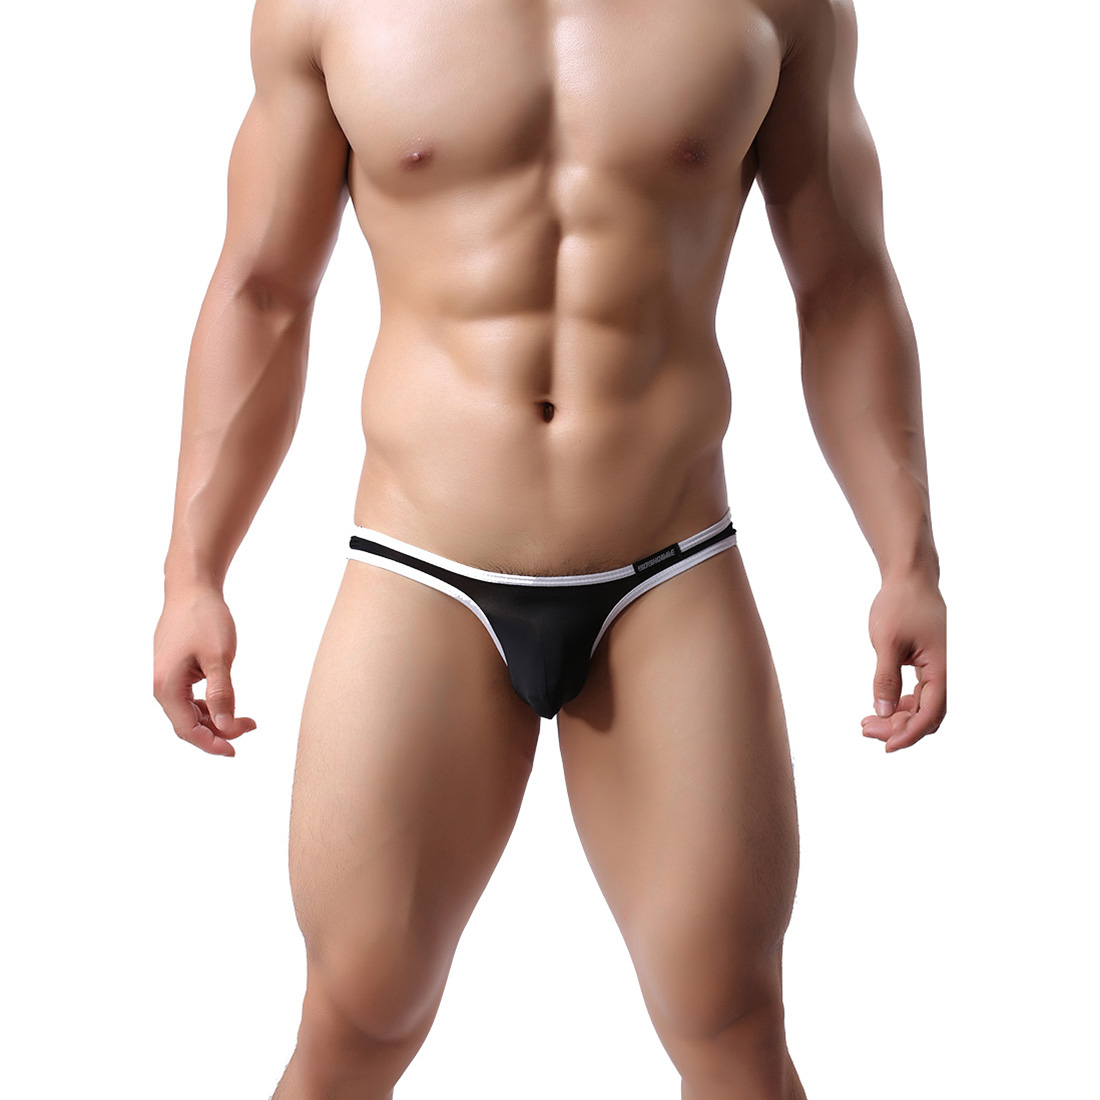 Men's Lingerie Underwear Sexy Briefs Triangle Pants ...